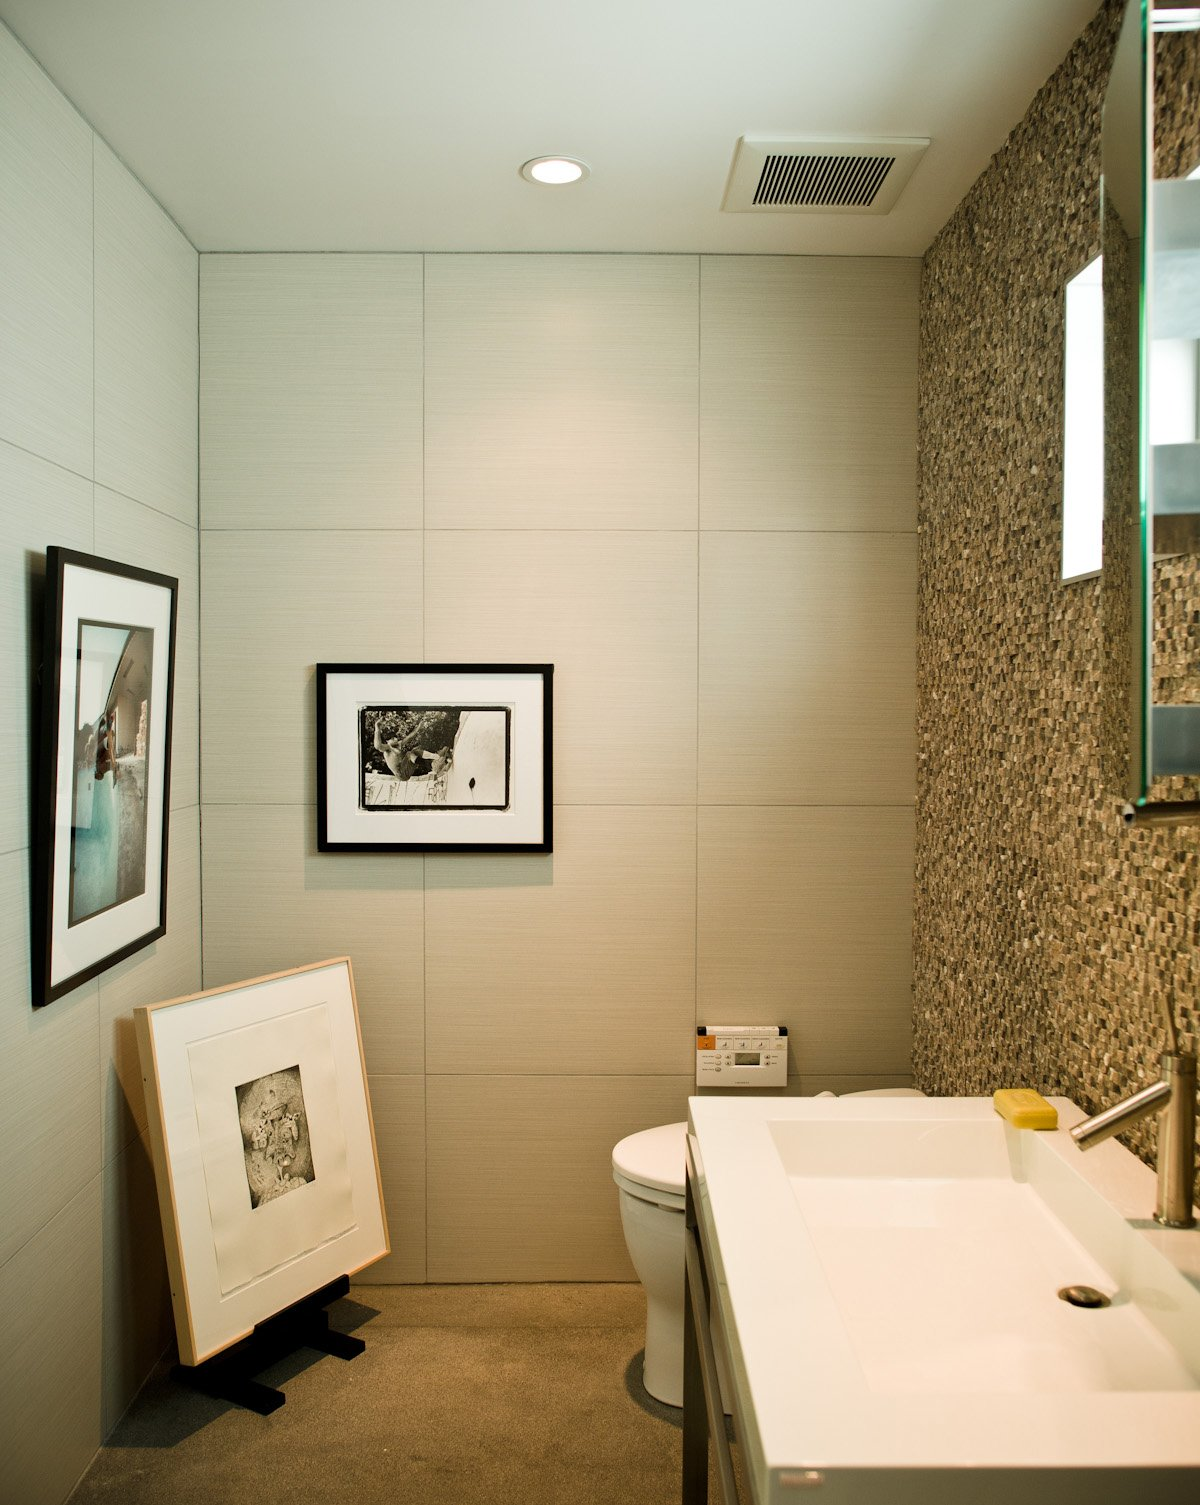 No room in the house is free from Jacobson's keen curatorial eye. The office bathroom is adorned with an original Glen E. Friedman image of skate legend Tony Alva (across from toilet) and a picture of Nathan Fletcher by Mark Oblow (adjacent). Framed on the floor is a George Condo illustration.  Photo 15 of 18 in Less is More in this Manhattan Beach Bungalow